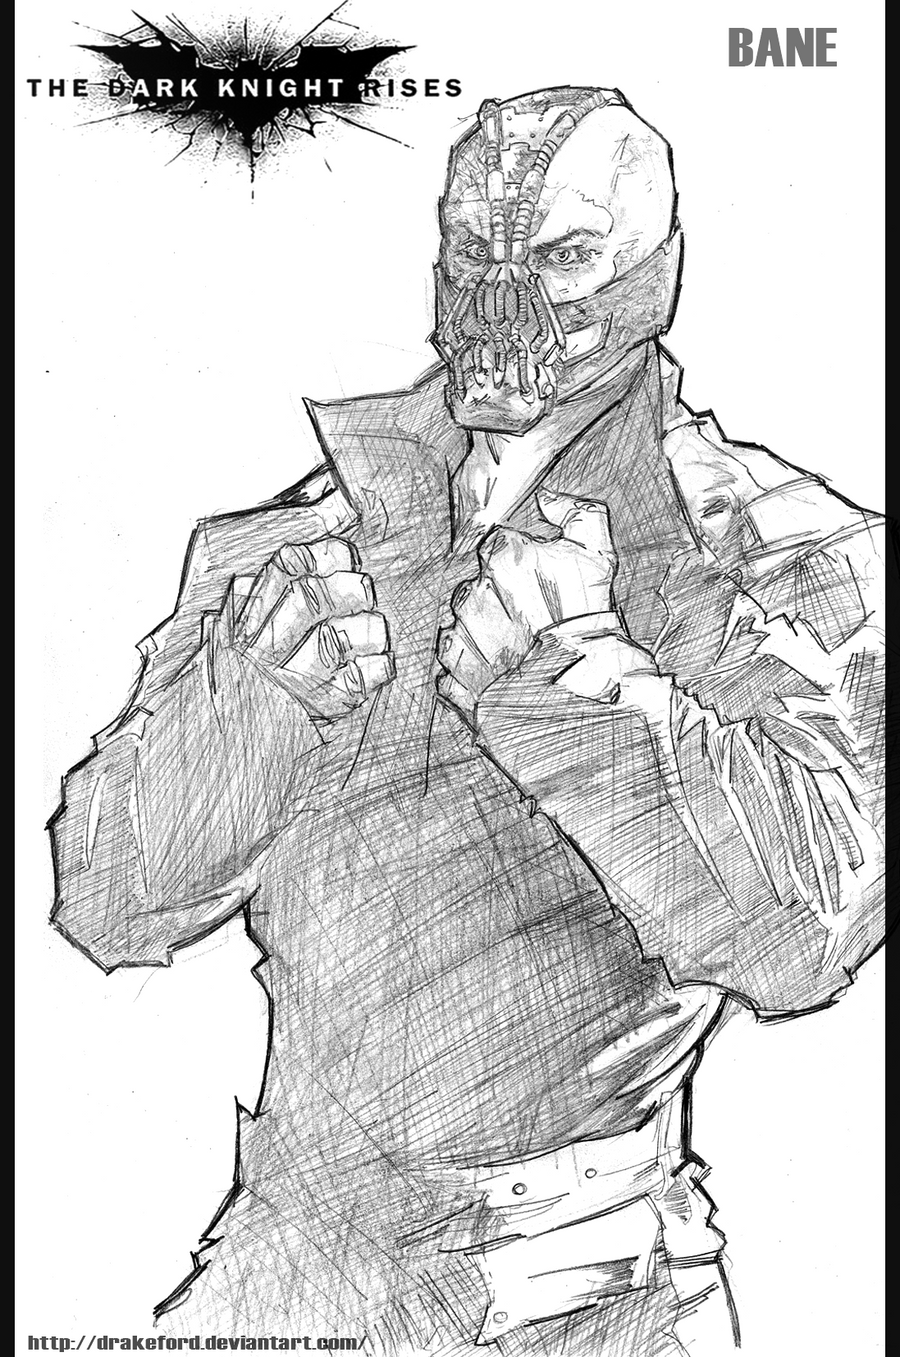 Dark knight rises coloring pages ~ BANE_THE DARK KNIGHT RISES by DRAKEFORD on deviantART